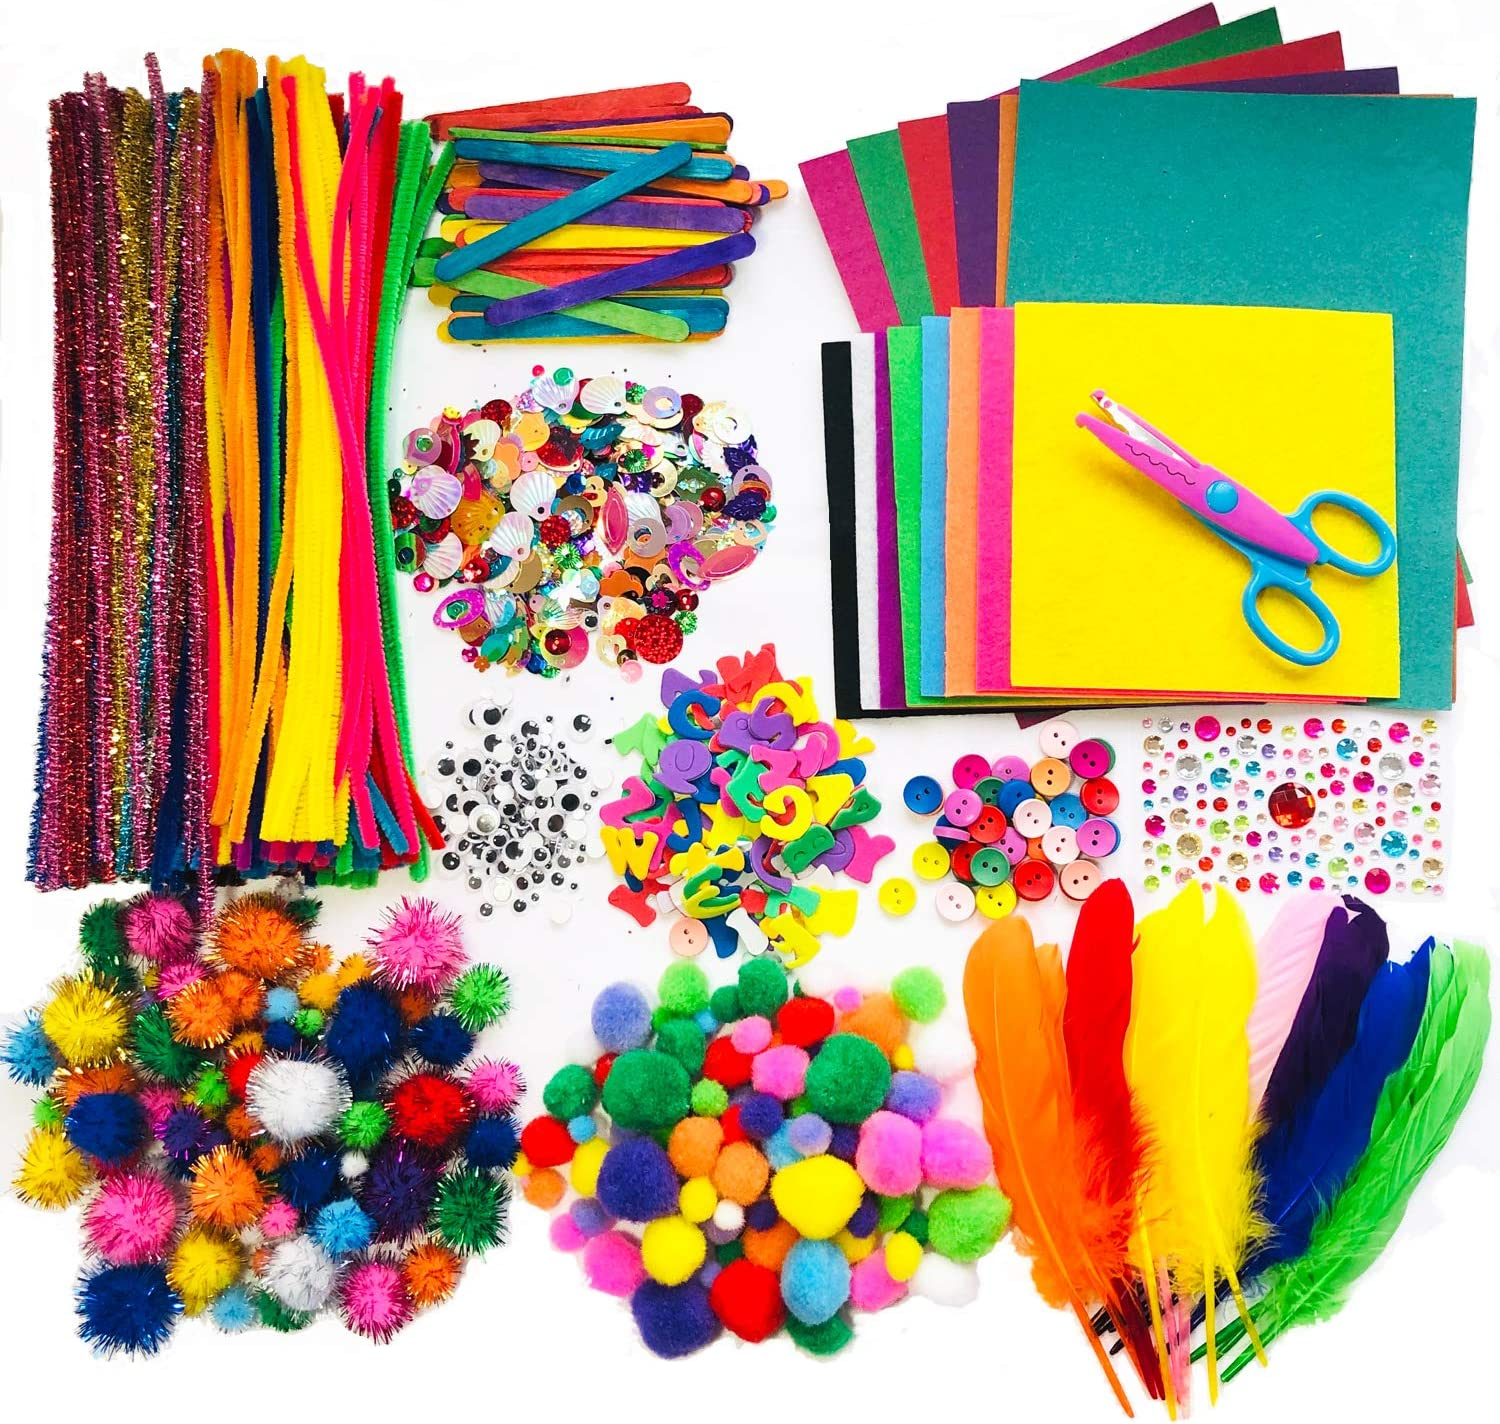 Buttons Feathers Ice Cream Sticks Pom Poms Wiggle Googly Eyes Sequins,Little Clip and More Arts and Crafts Supplies for Kids Including Pipe Cleaner